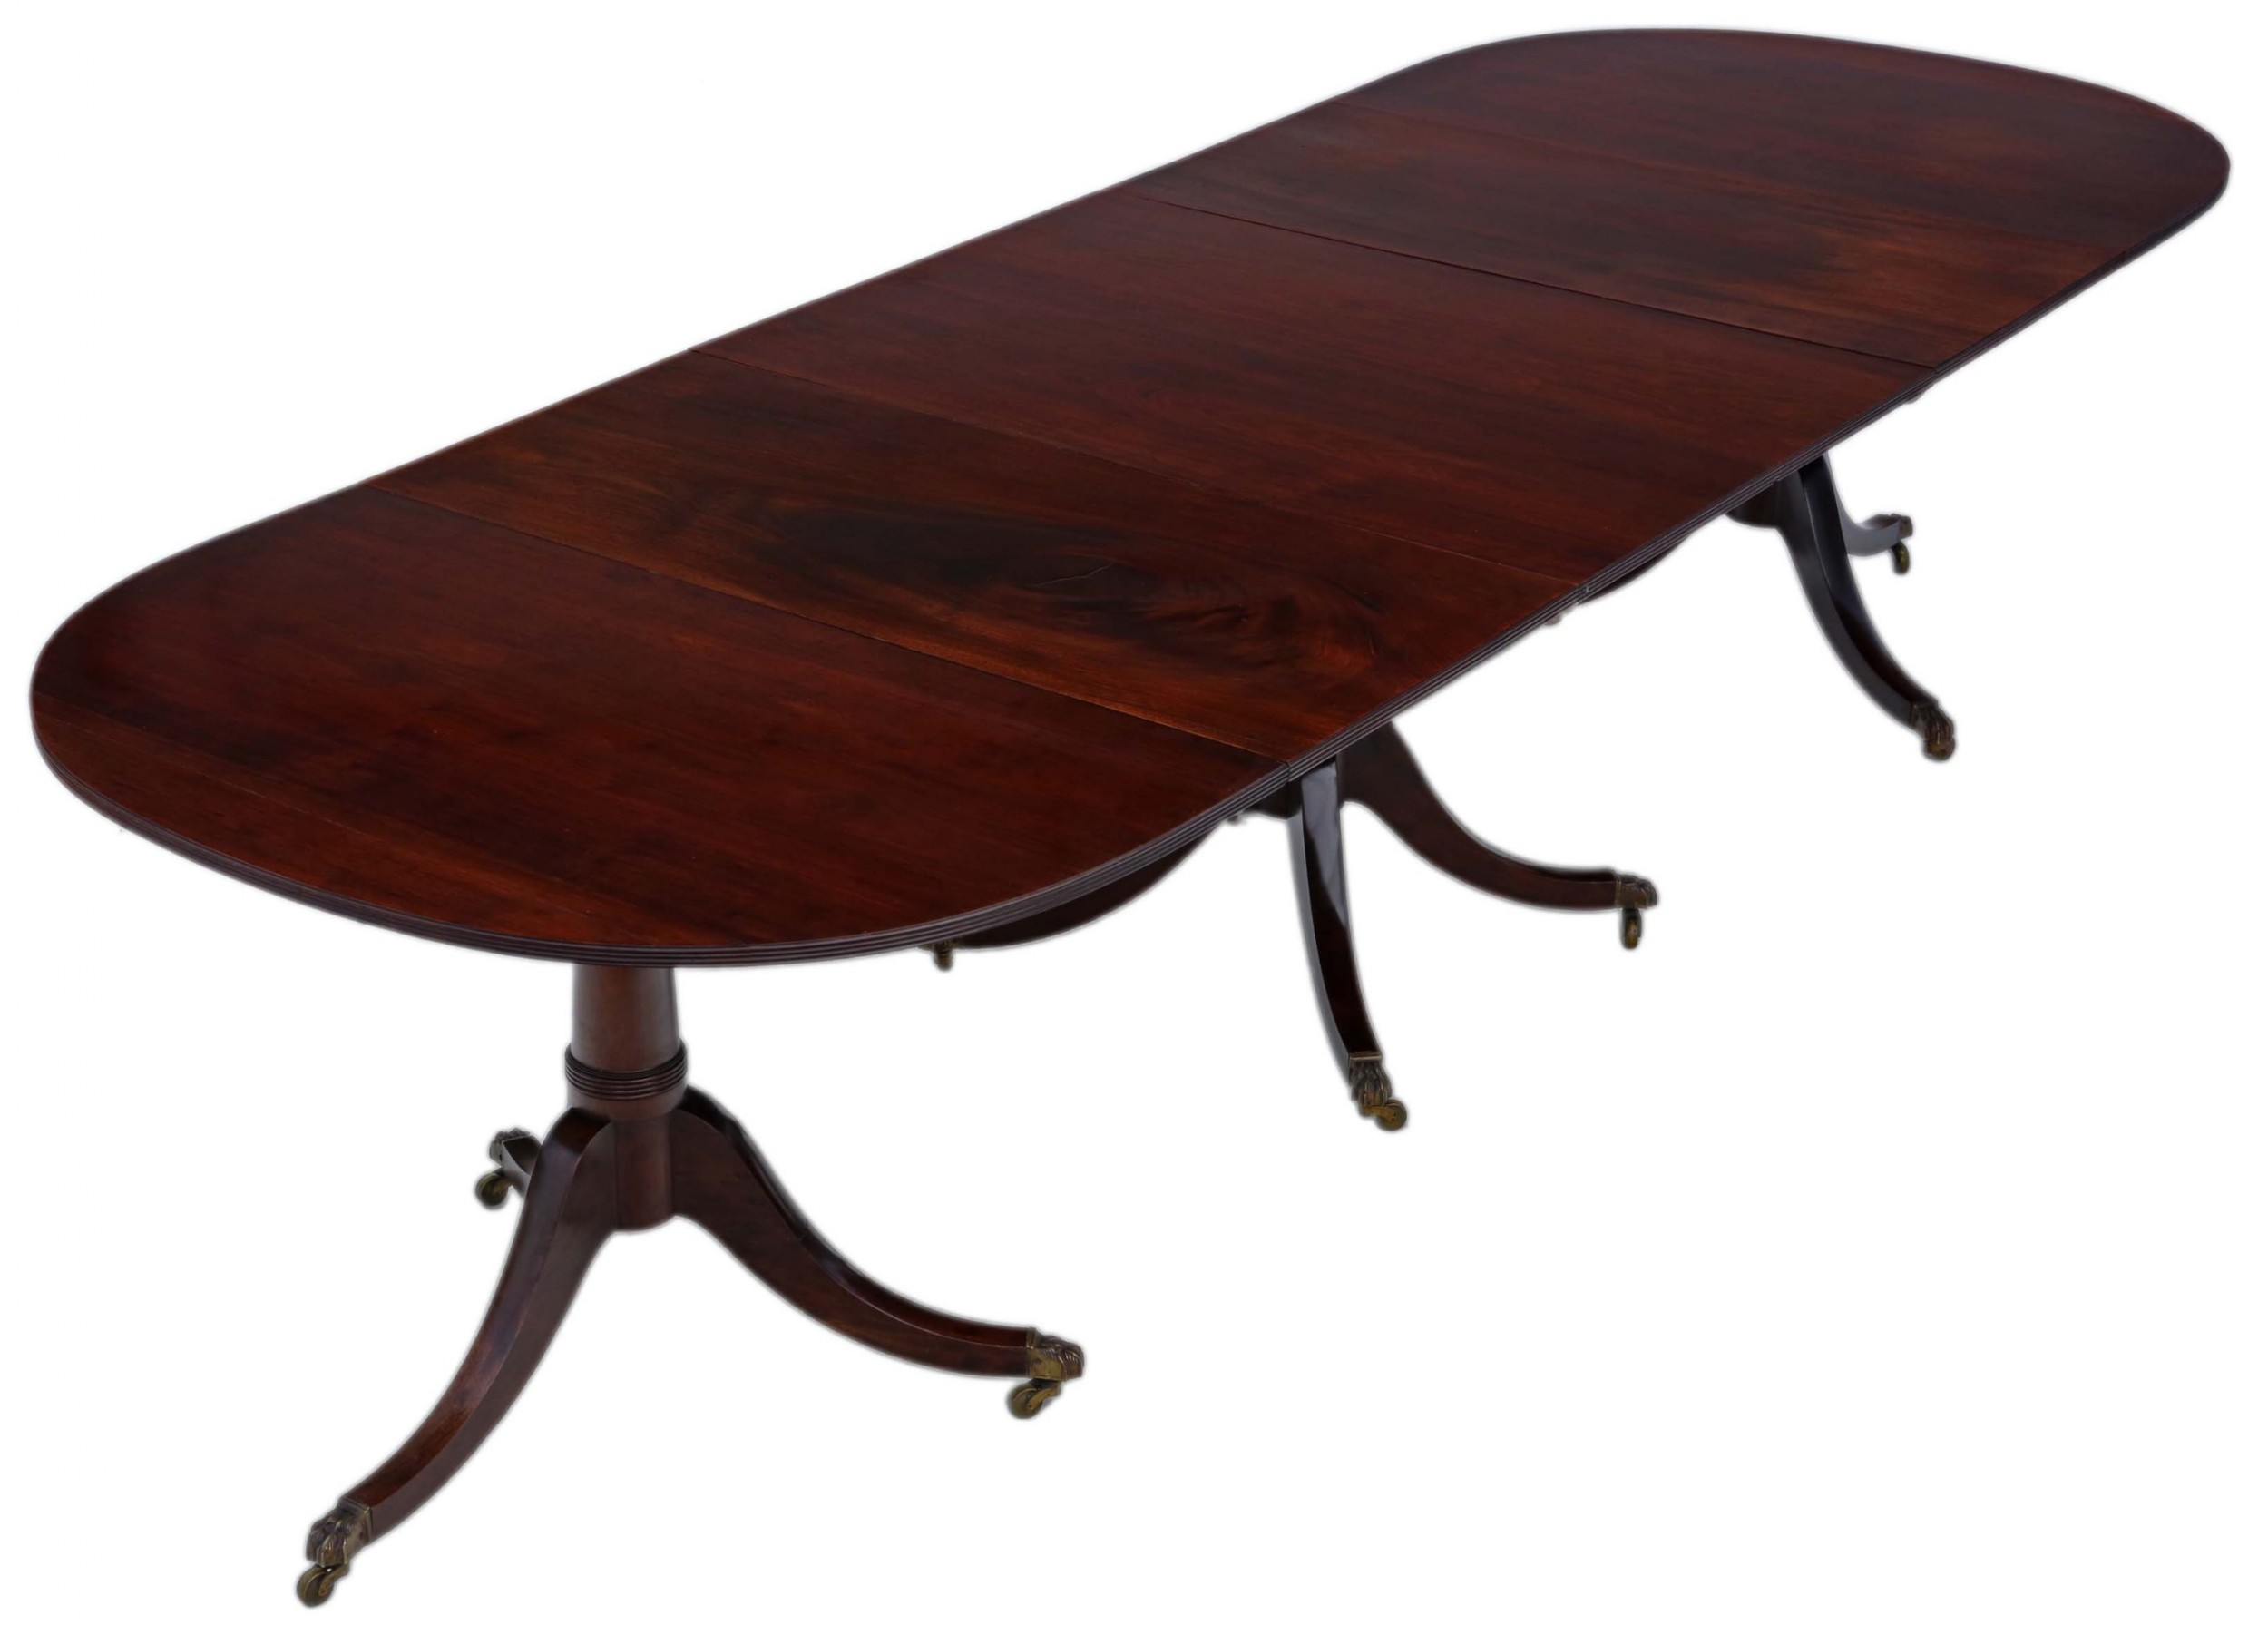 antique very large fine quality 10' cuban mahogany extending dining table